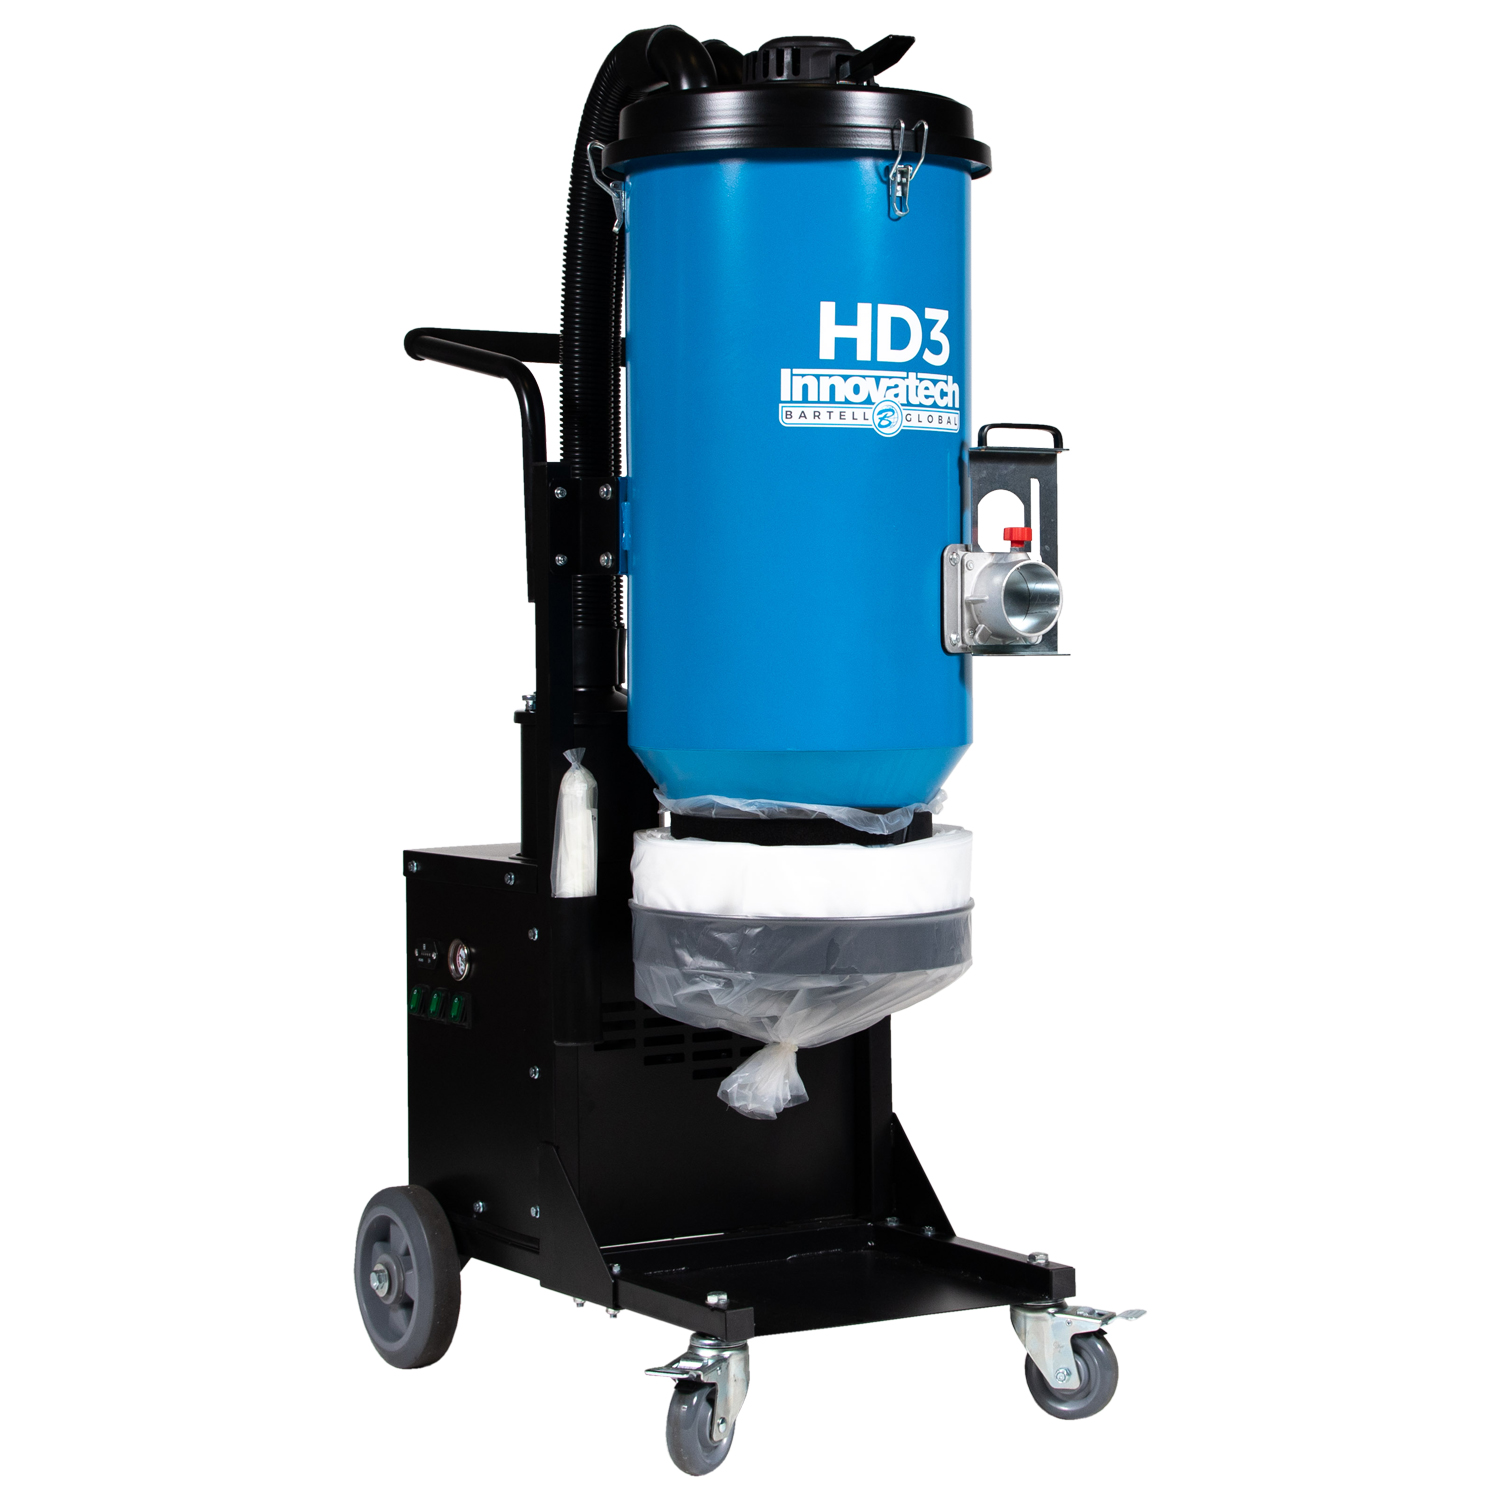 Innovatech HD3 Dust Collector, HD3, Dust Collector, Innovatech HD3